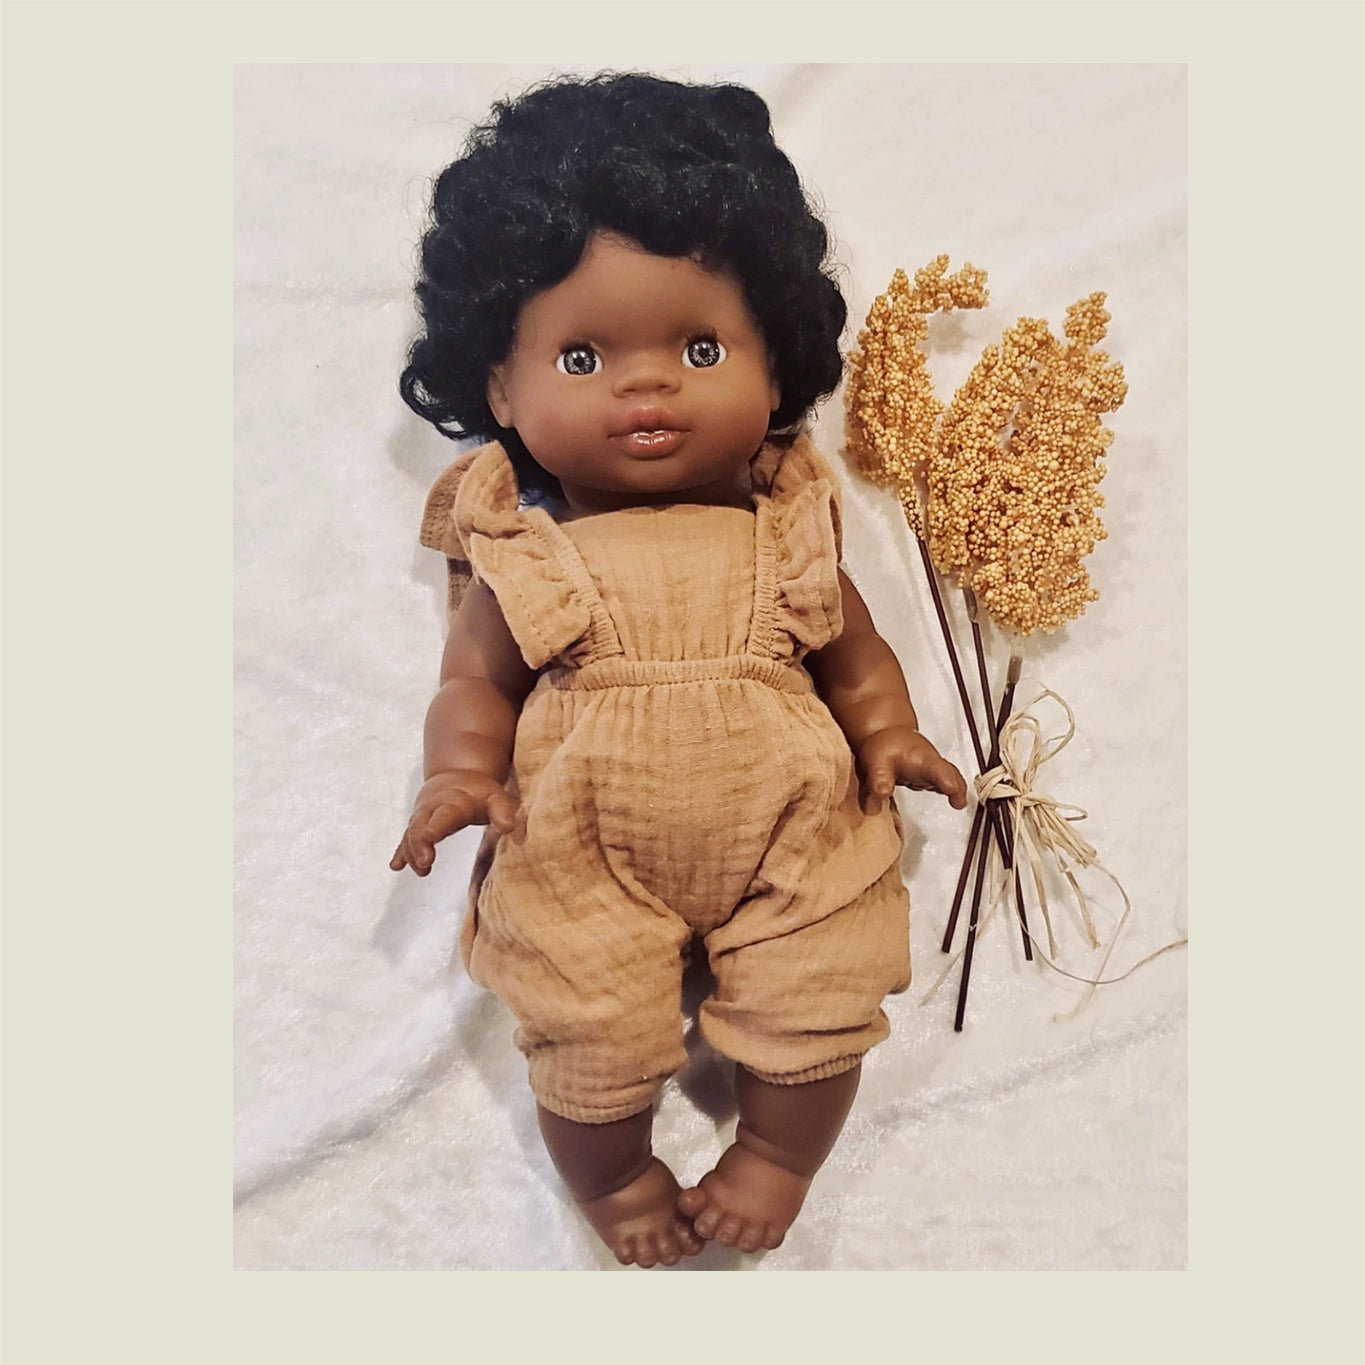 Imani Baby Doll - Blackbird General Store